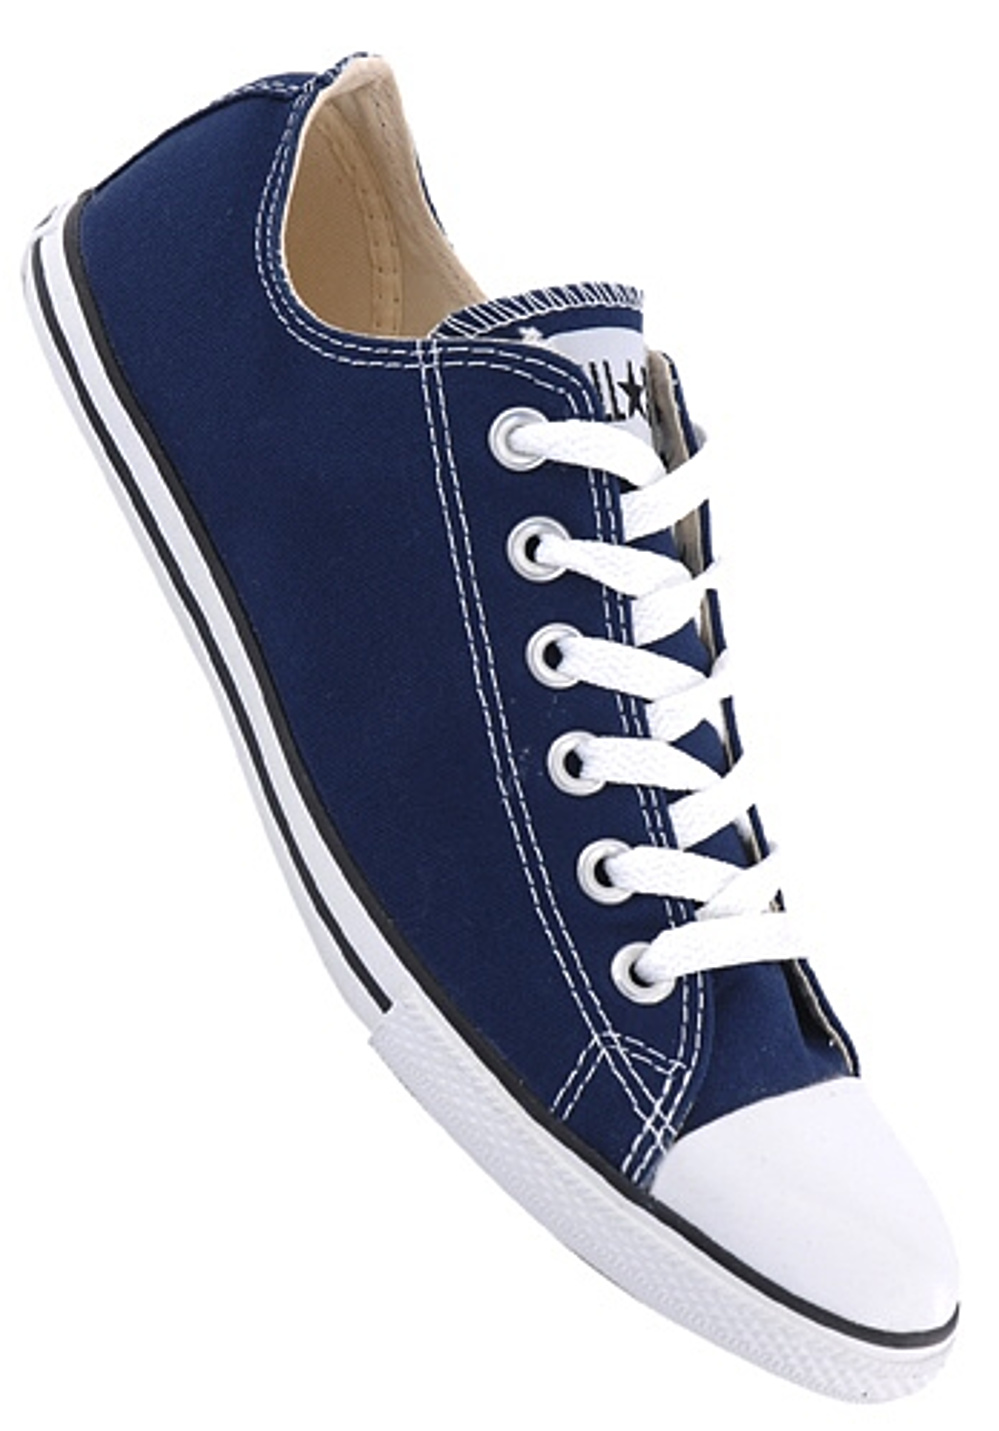 Converse Chuck Taylor All Star Slim Ox Canvas - Sneakers for Men - Blue -  Planet Sports 52fd1b9773